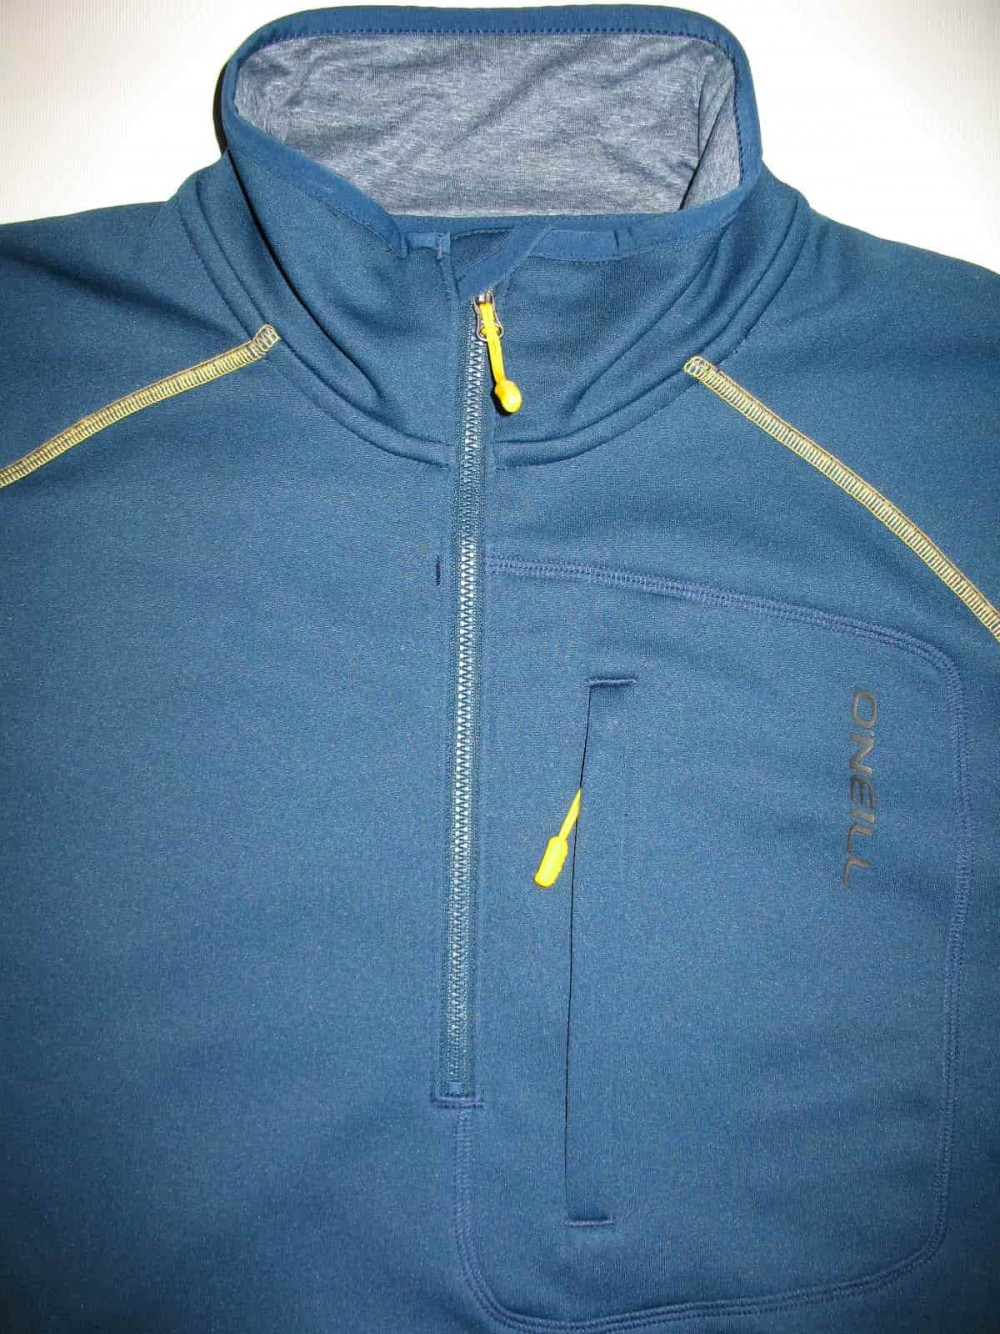 Кофта O'NEILL tuned FZ stretch tech fleece (размер XXL) - 6